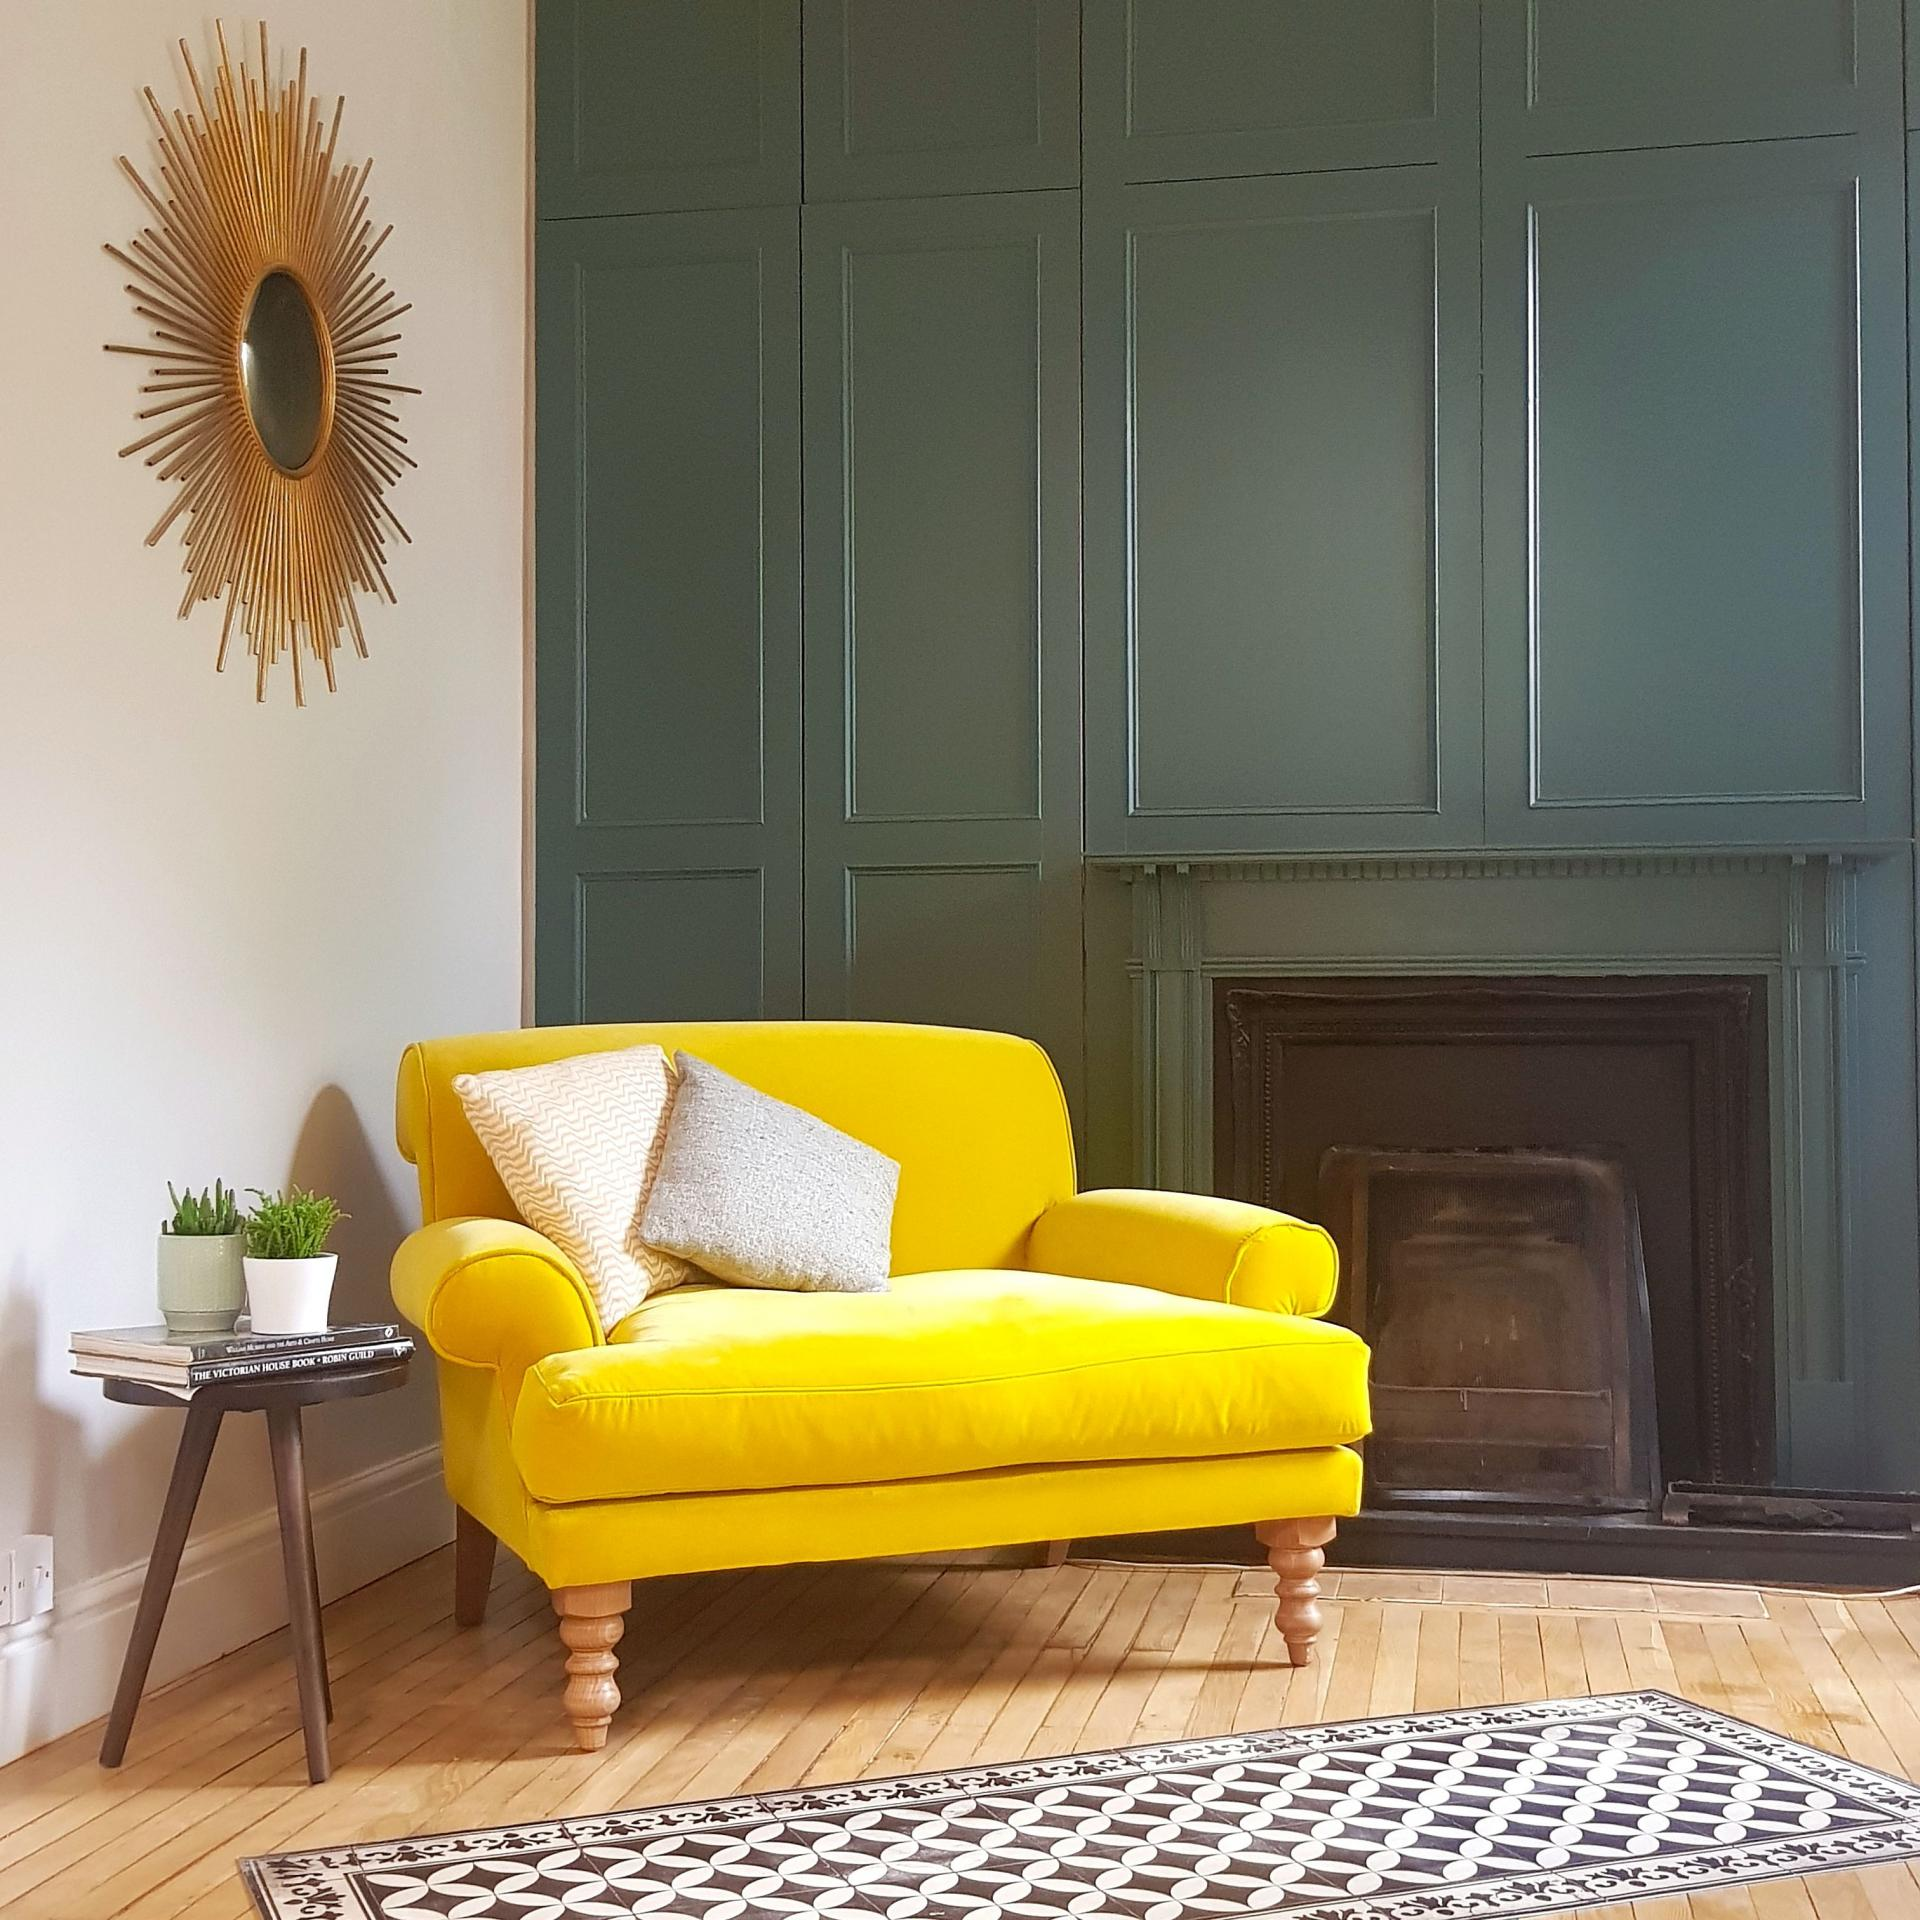 Green Panelled Walls with Yellow Chair | Green Living Room Inspiration| Today we're talking inspiration for a green living room. Green is a really versatile colour to decorate your home with. But, which colours and tones work well? What kind of accessories work with green? This post gives you ideas for pulling together an elegant green colour palette and pieces for your home. Read more: kittyandb.com #greenlivingroom #greencolorpalette #Greenandyellow #greenaesthetic #colourfulhomedecor